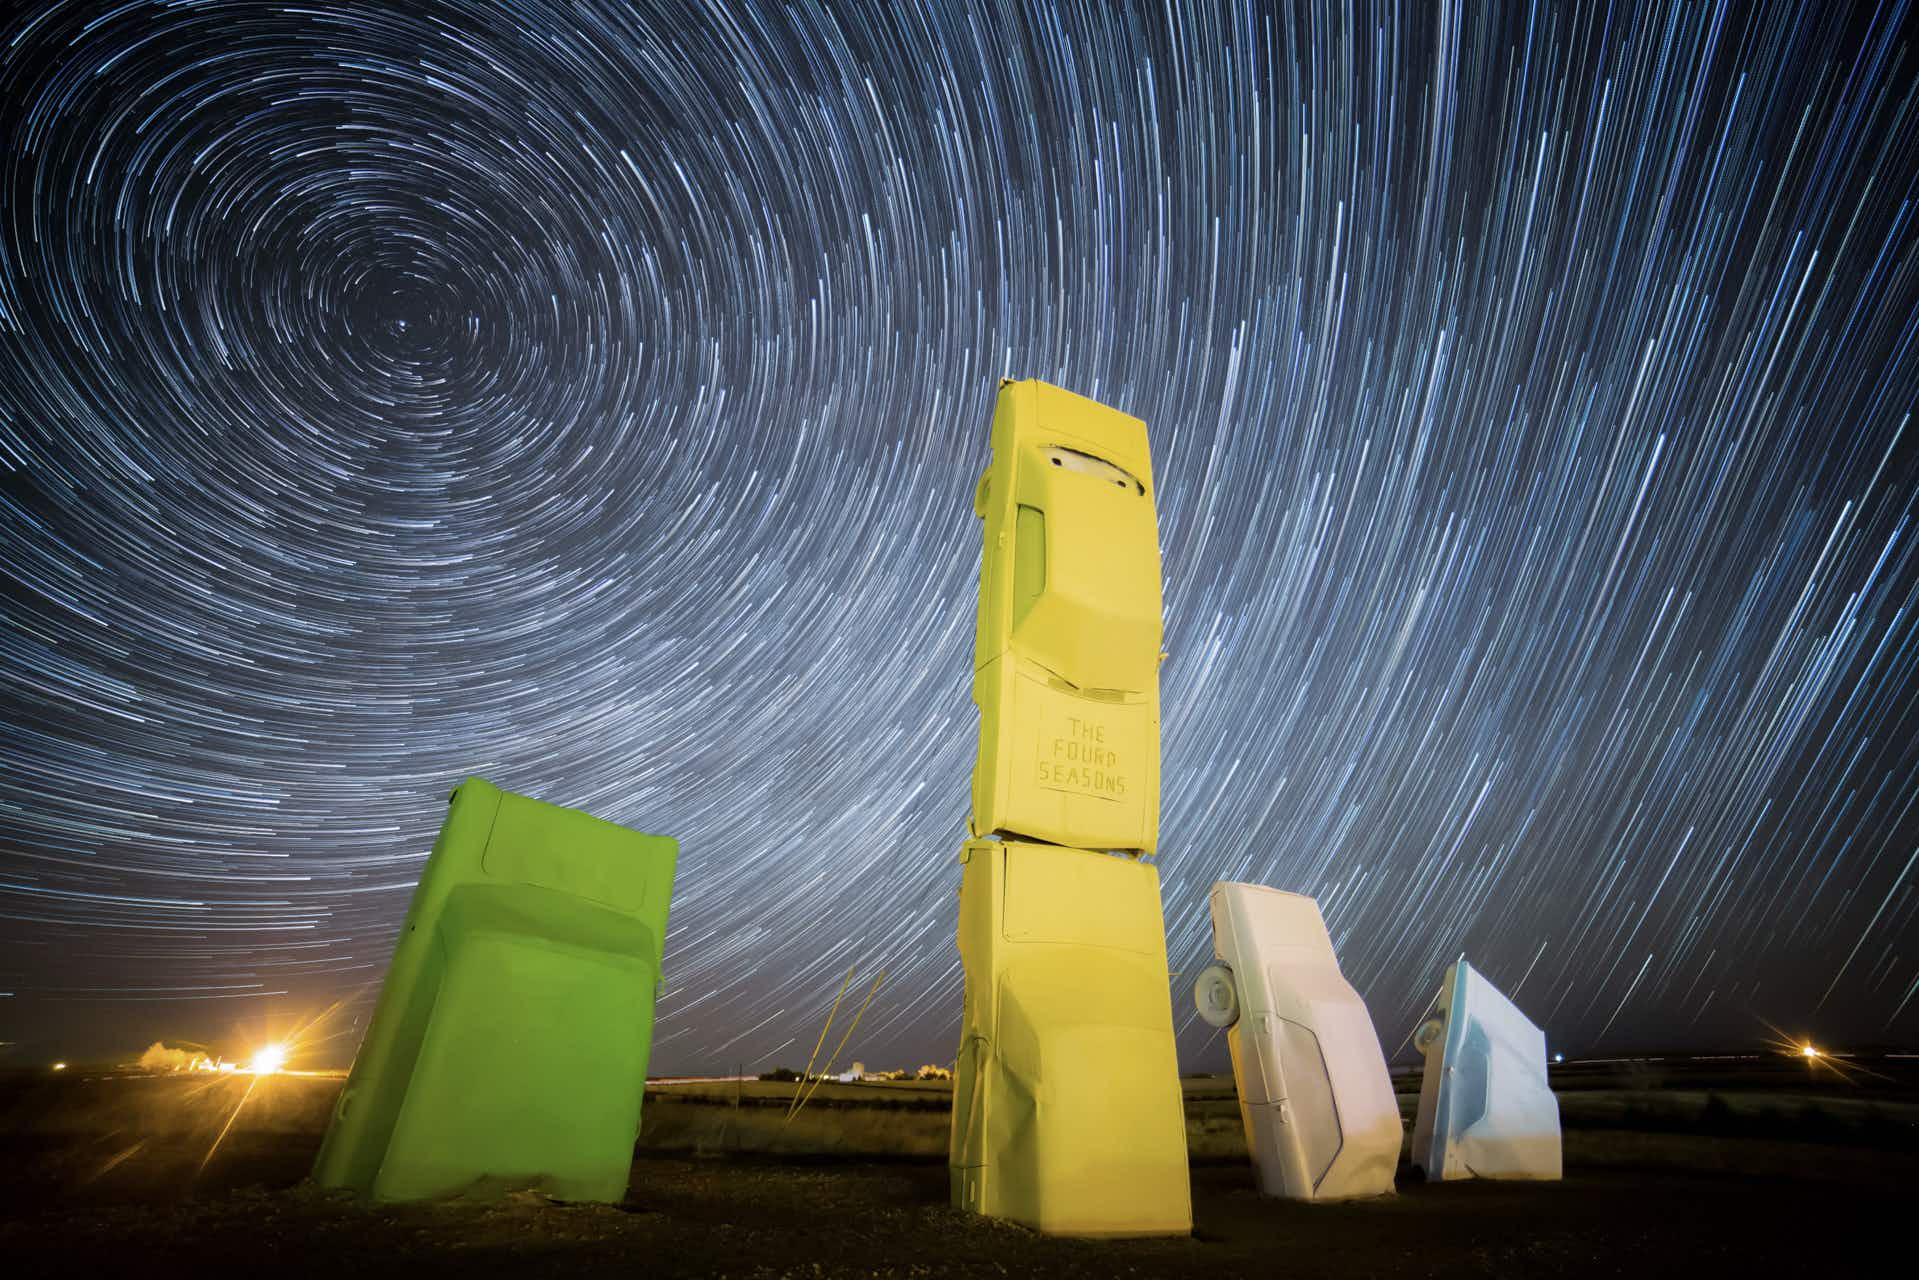 This time-lapse video captures sunsets, star trails and the total eclipse over Nebraska's Carhenge